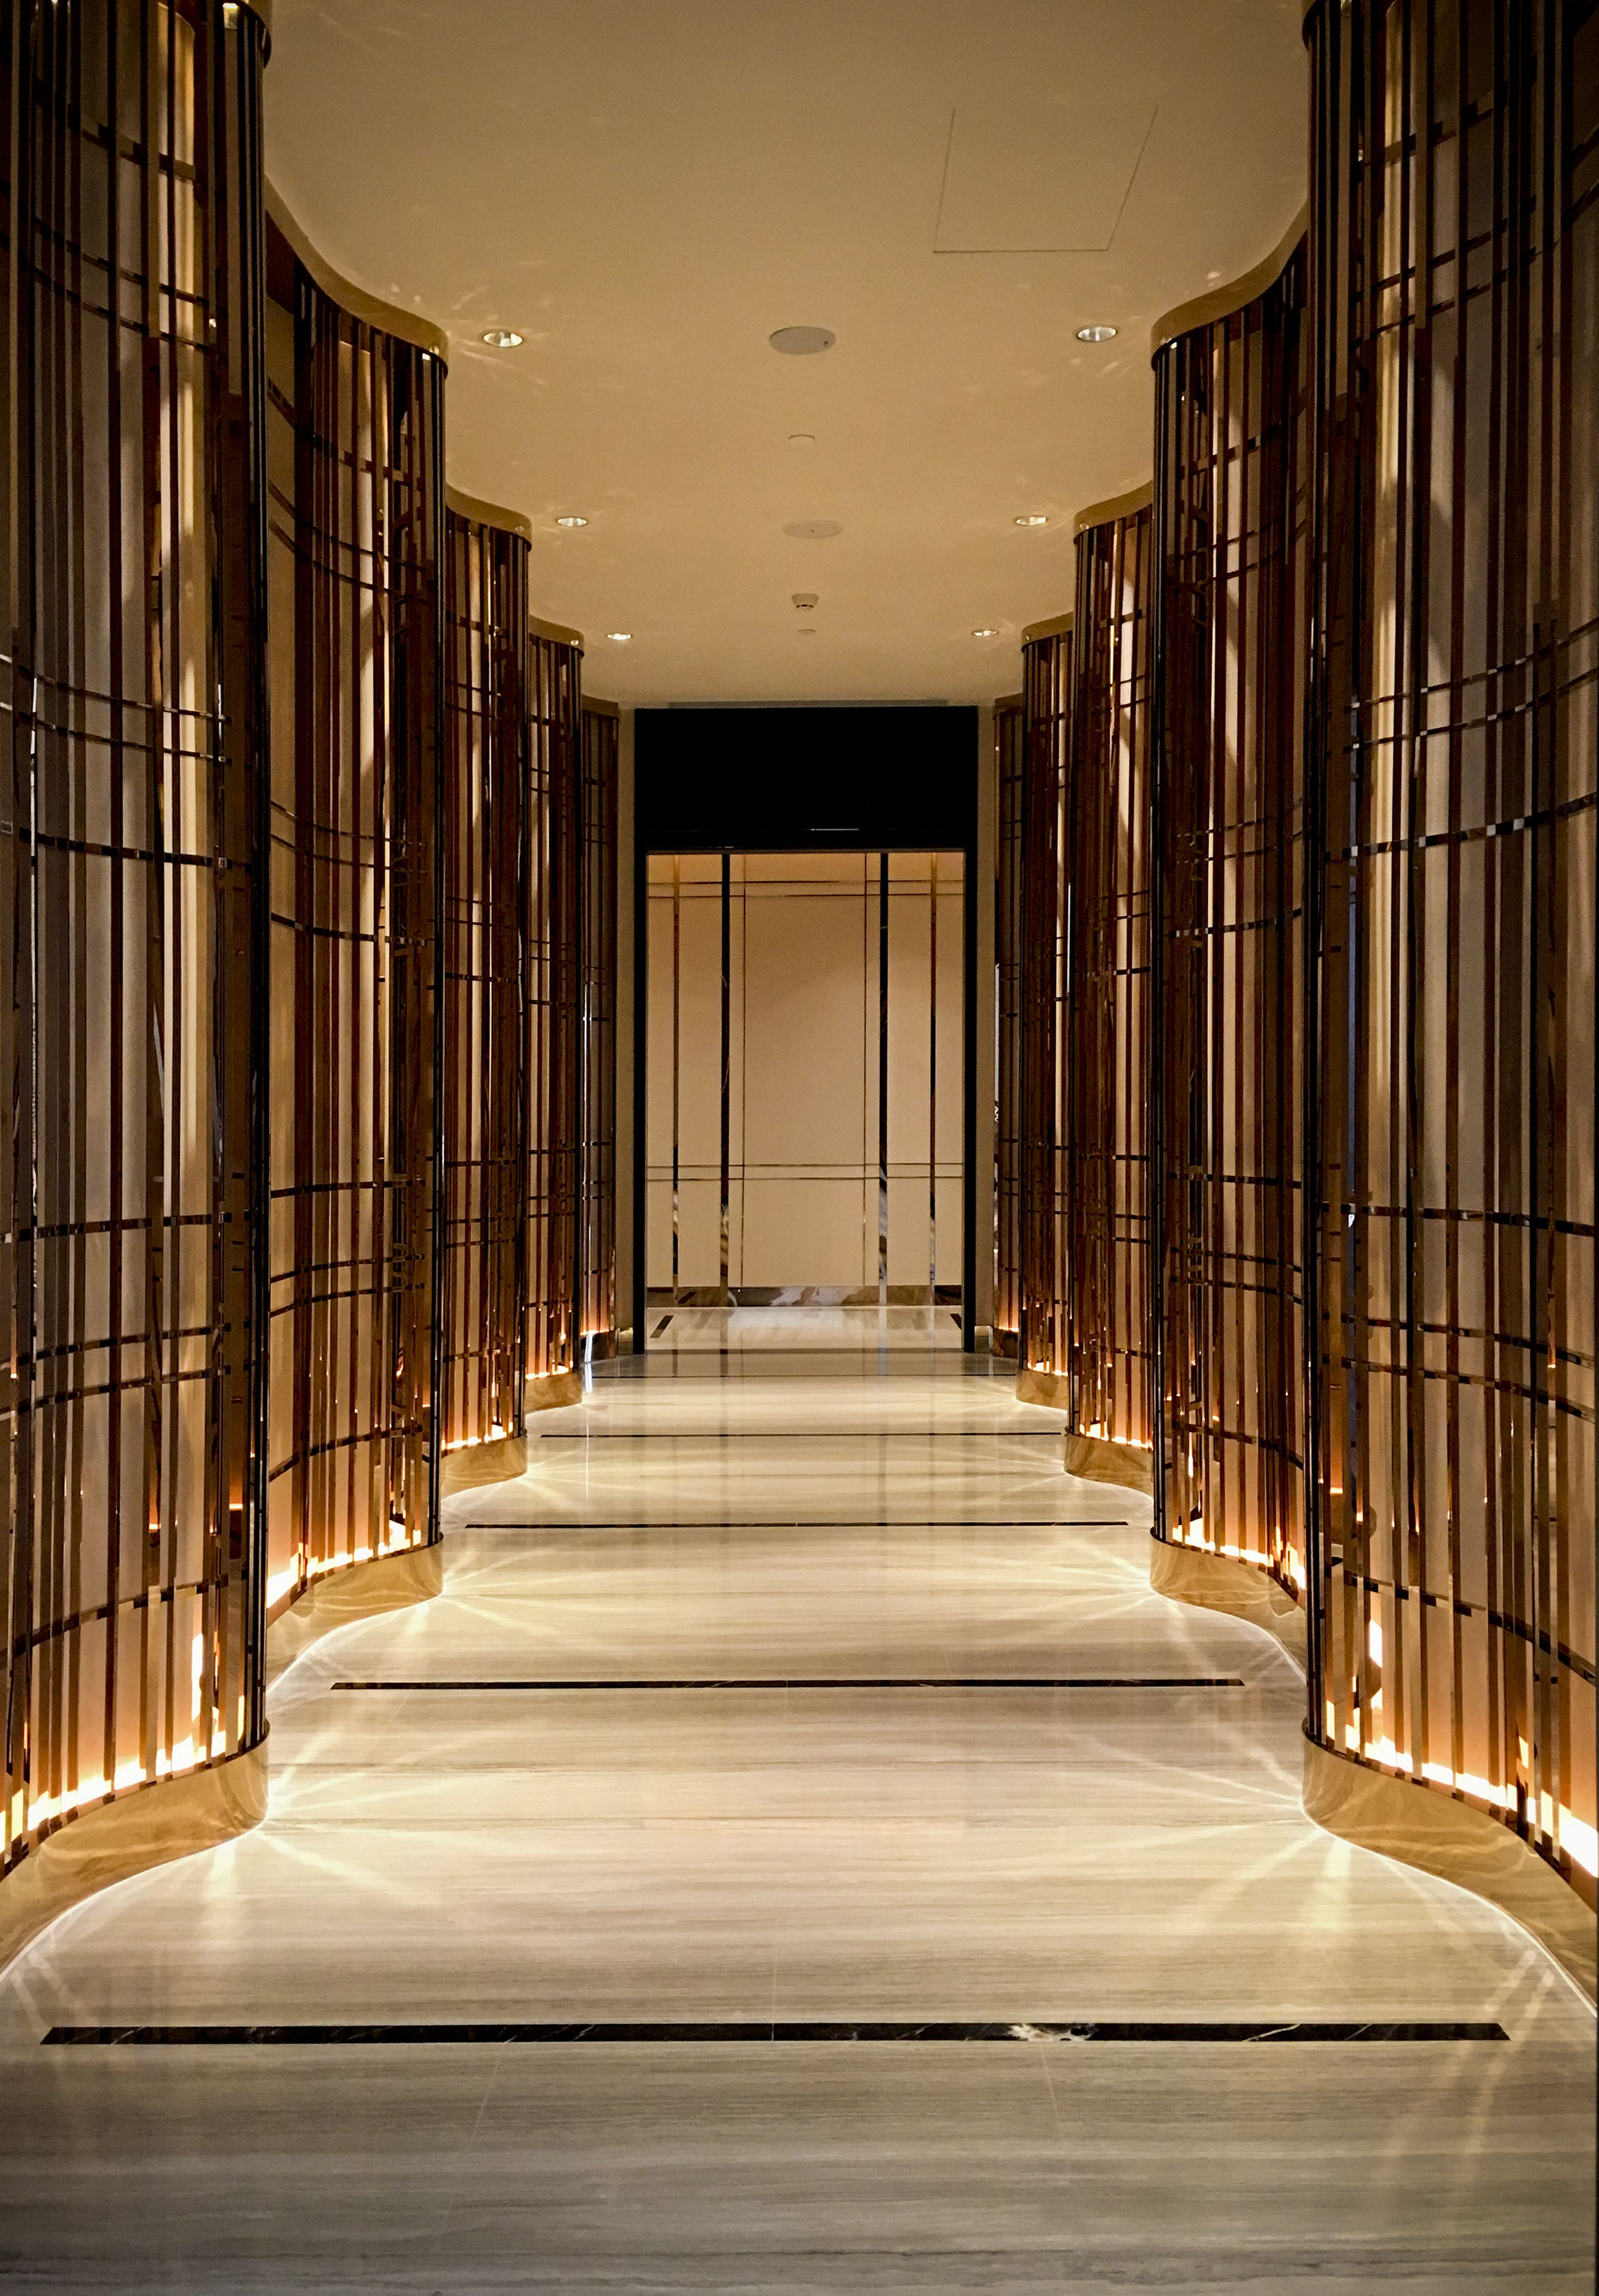 Intercontinental shanghai necc by hba design top - Hotel interior and exterior design ...